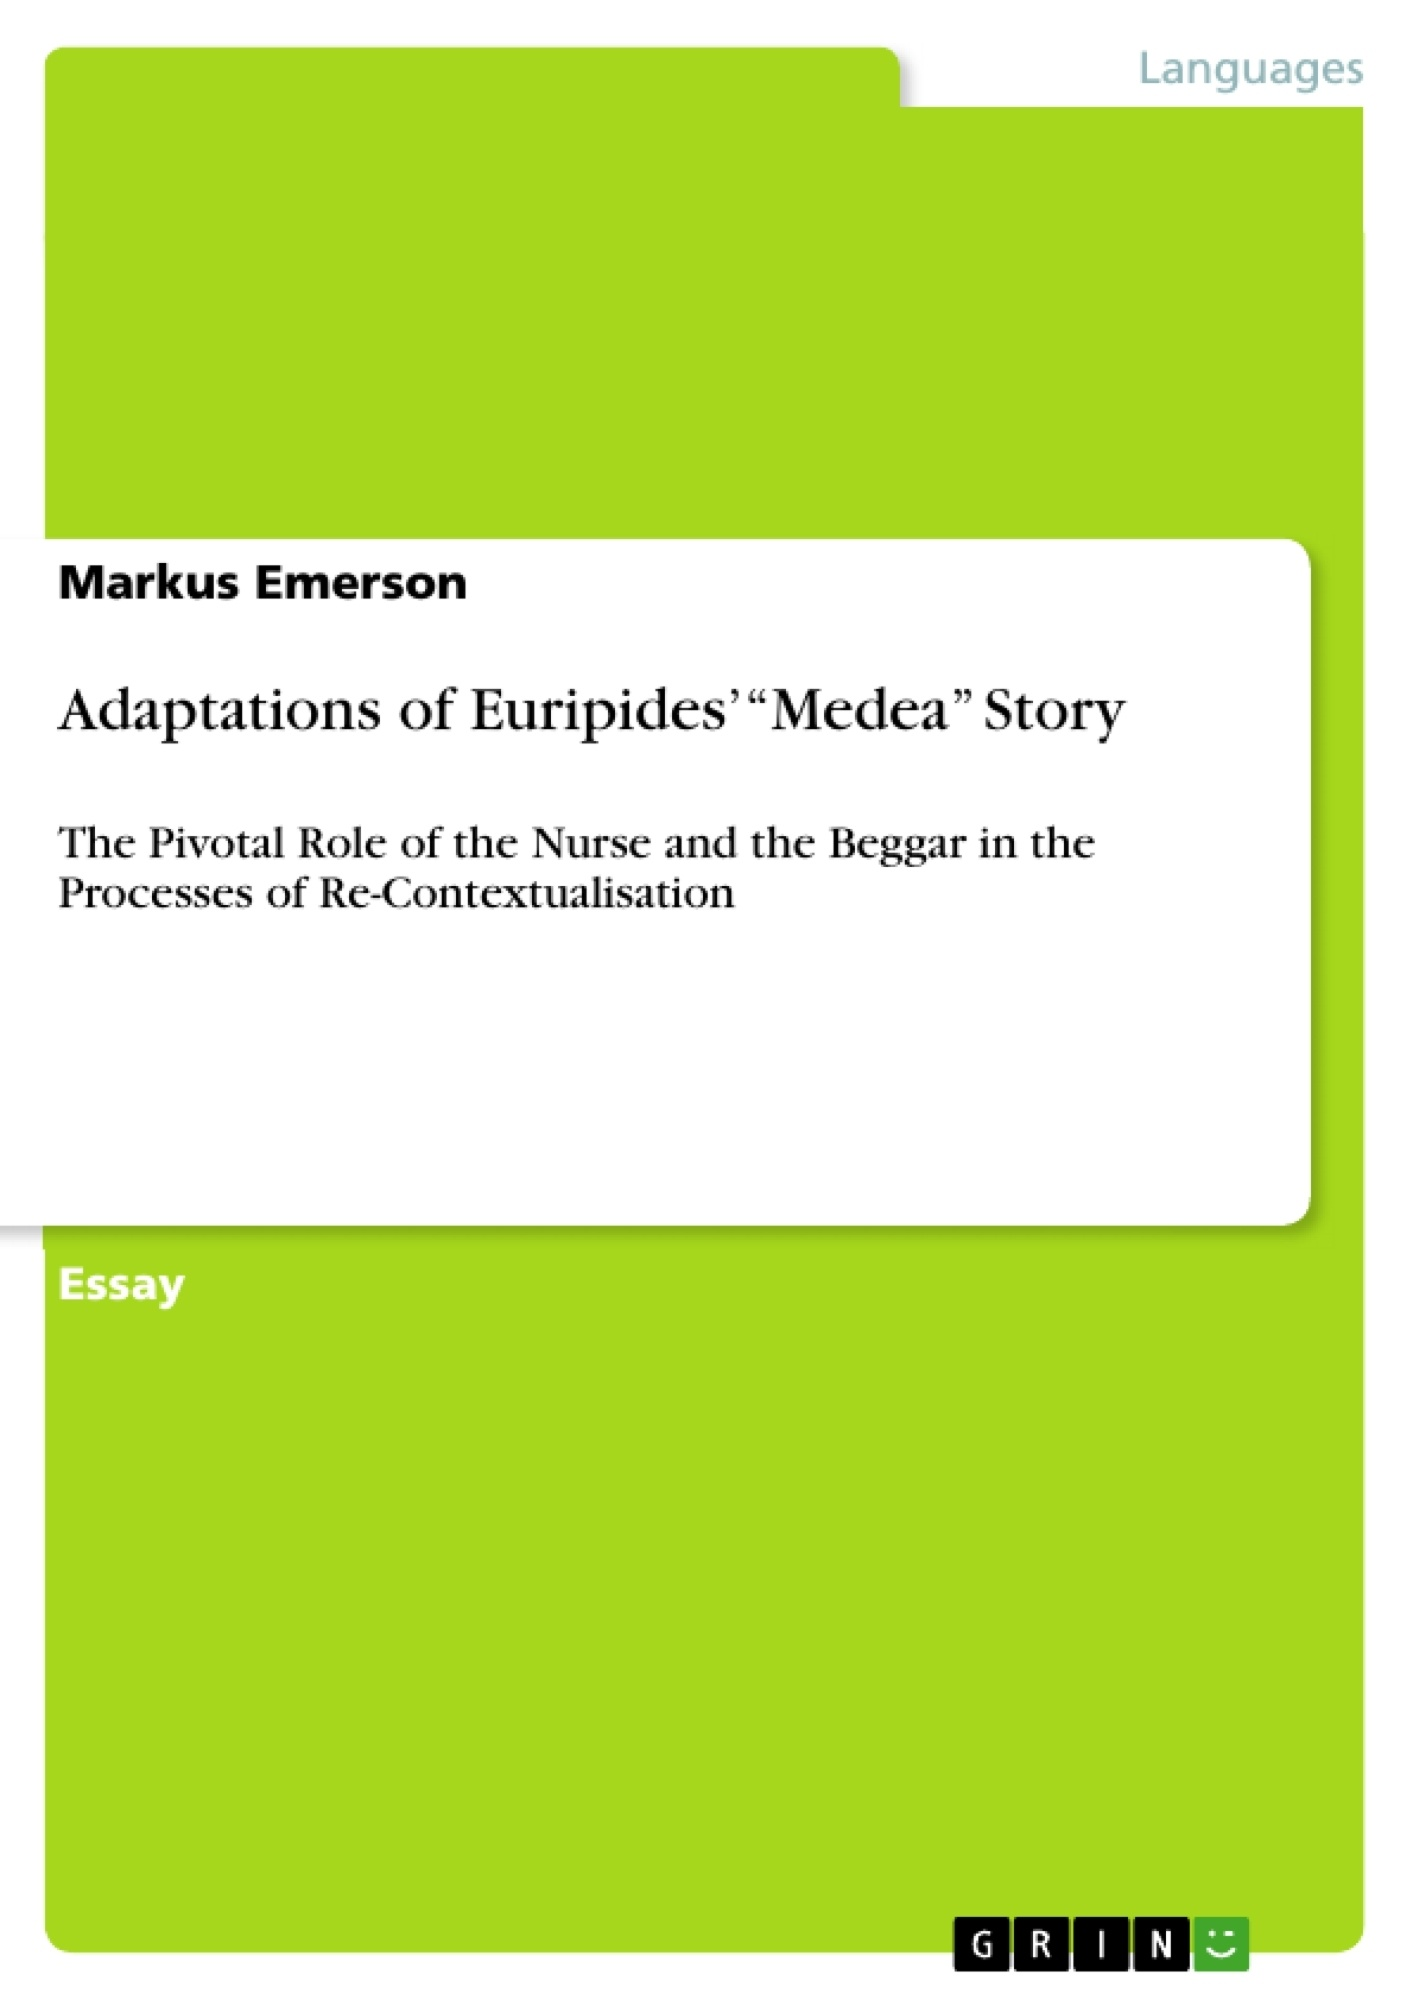 medea essay adaptations of euripides ldquo medea rdquo story  adaptations of euripides ldquo medea rdquo story publish your master s adaptations of euripides ldquomedeardquo story